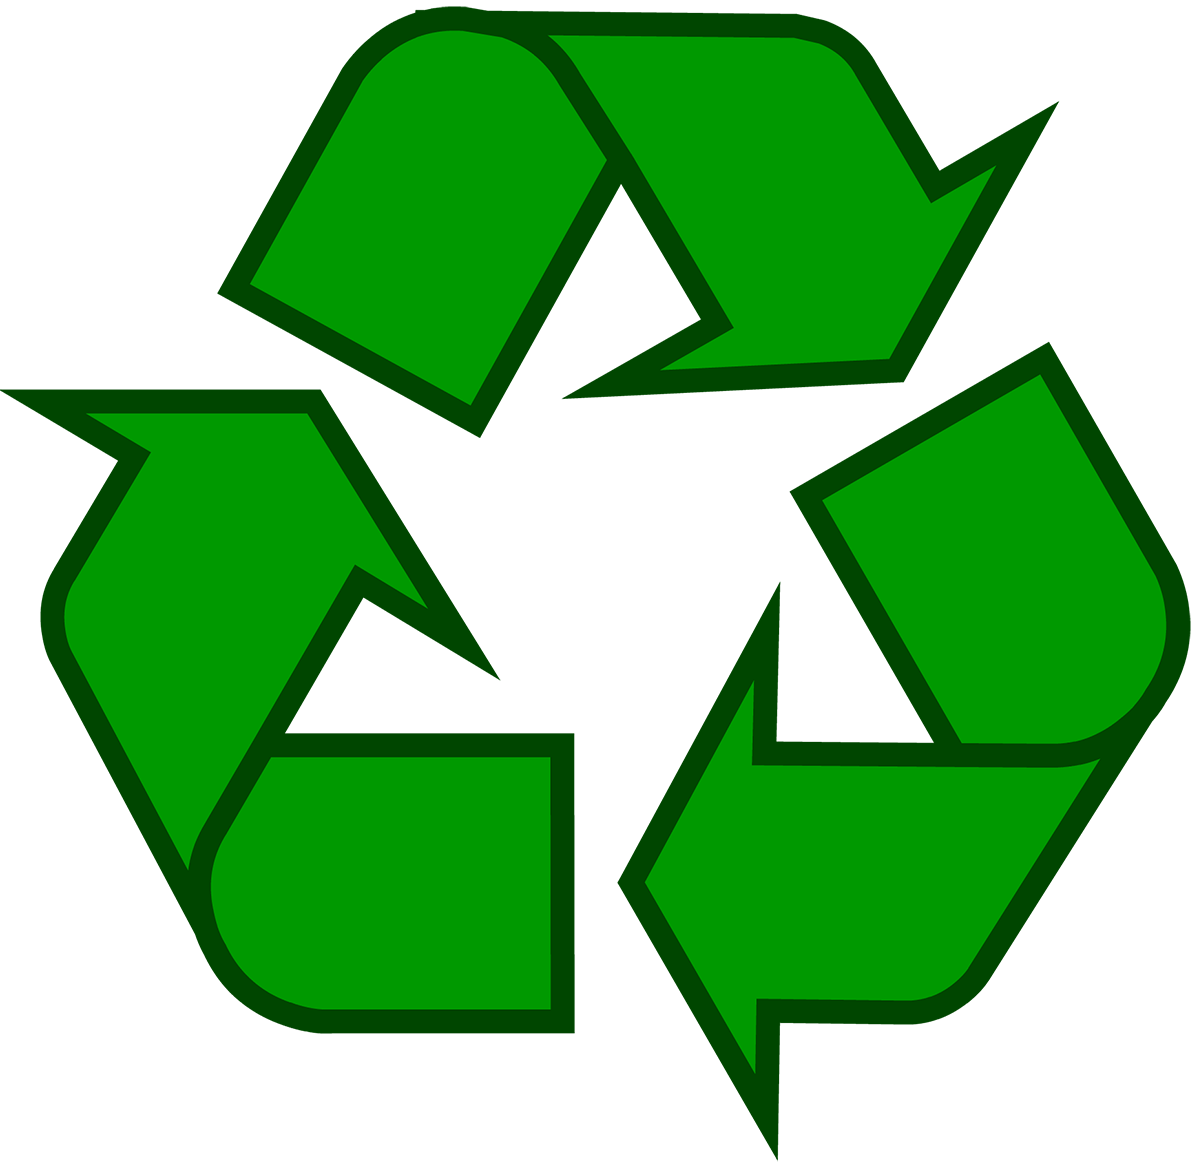 recycling-symbol-icon-outline-solid-dark-green